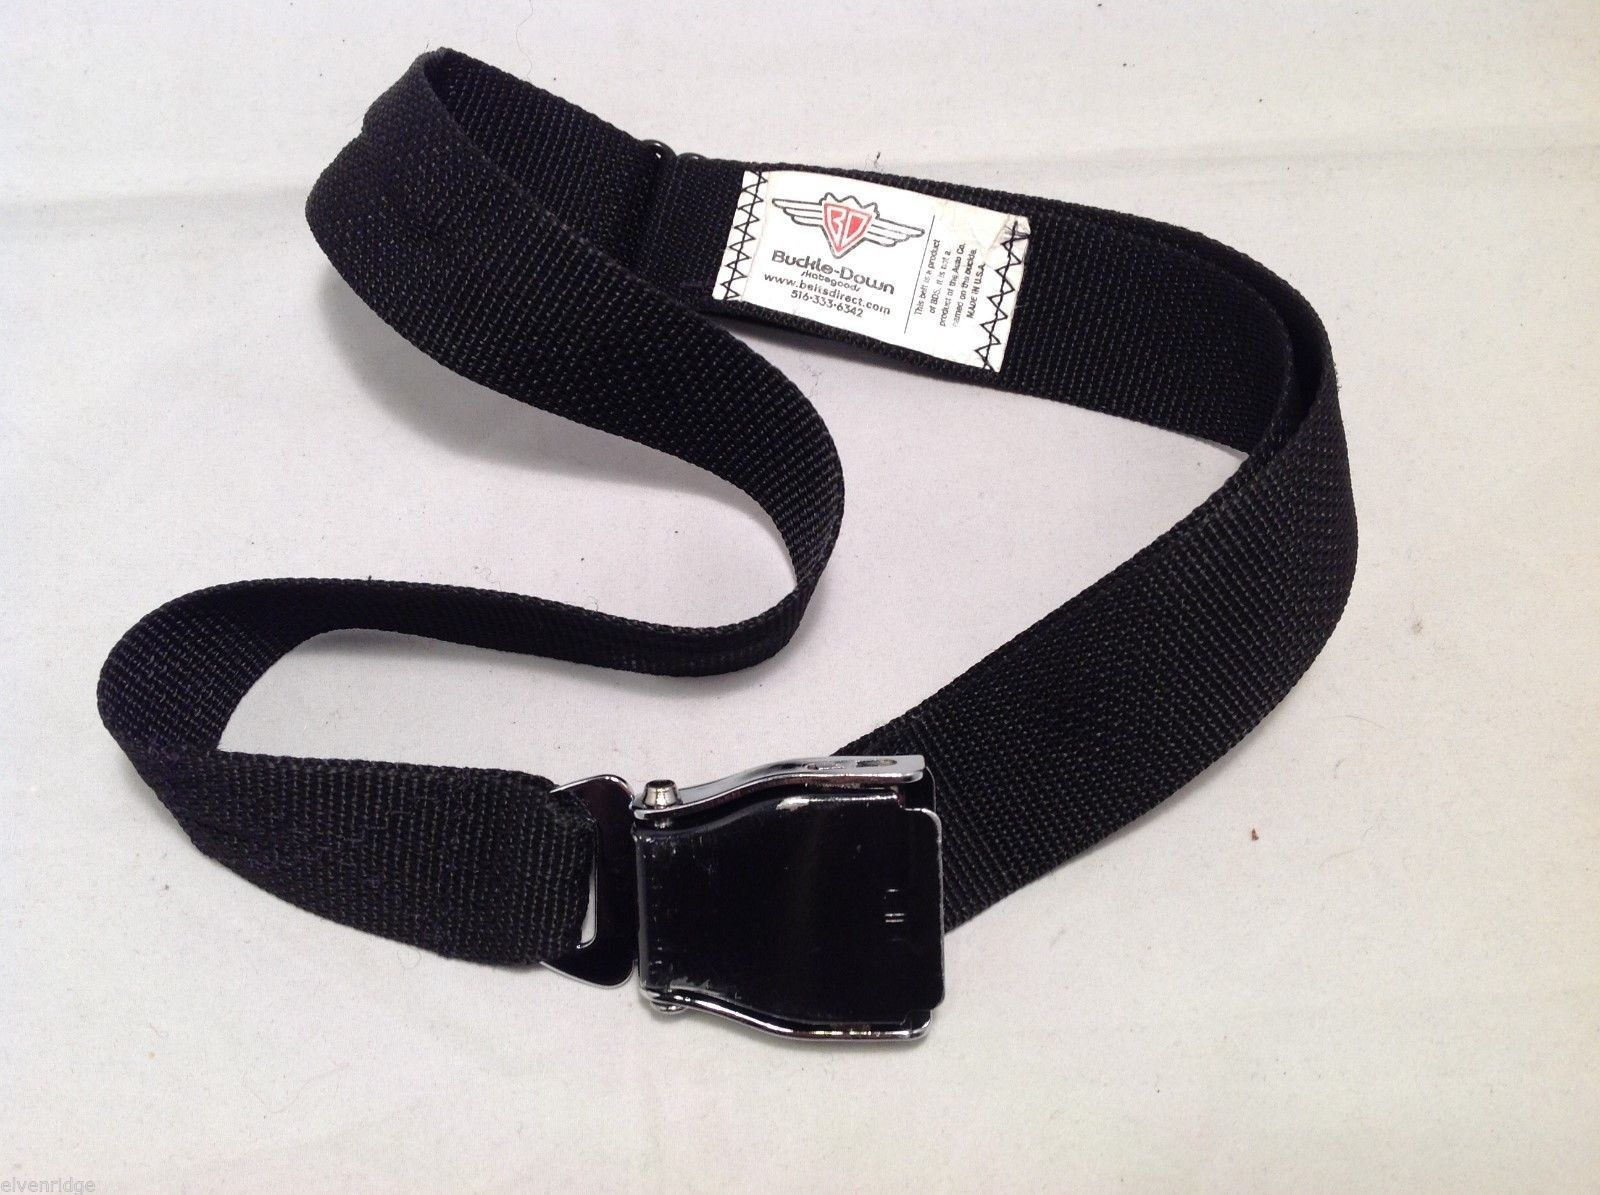 Buckledown Unisex Black Belt like seatbelt buckle, 20-40""